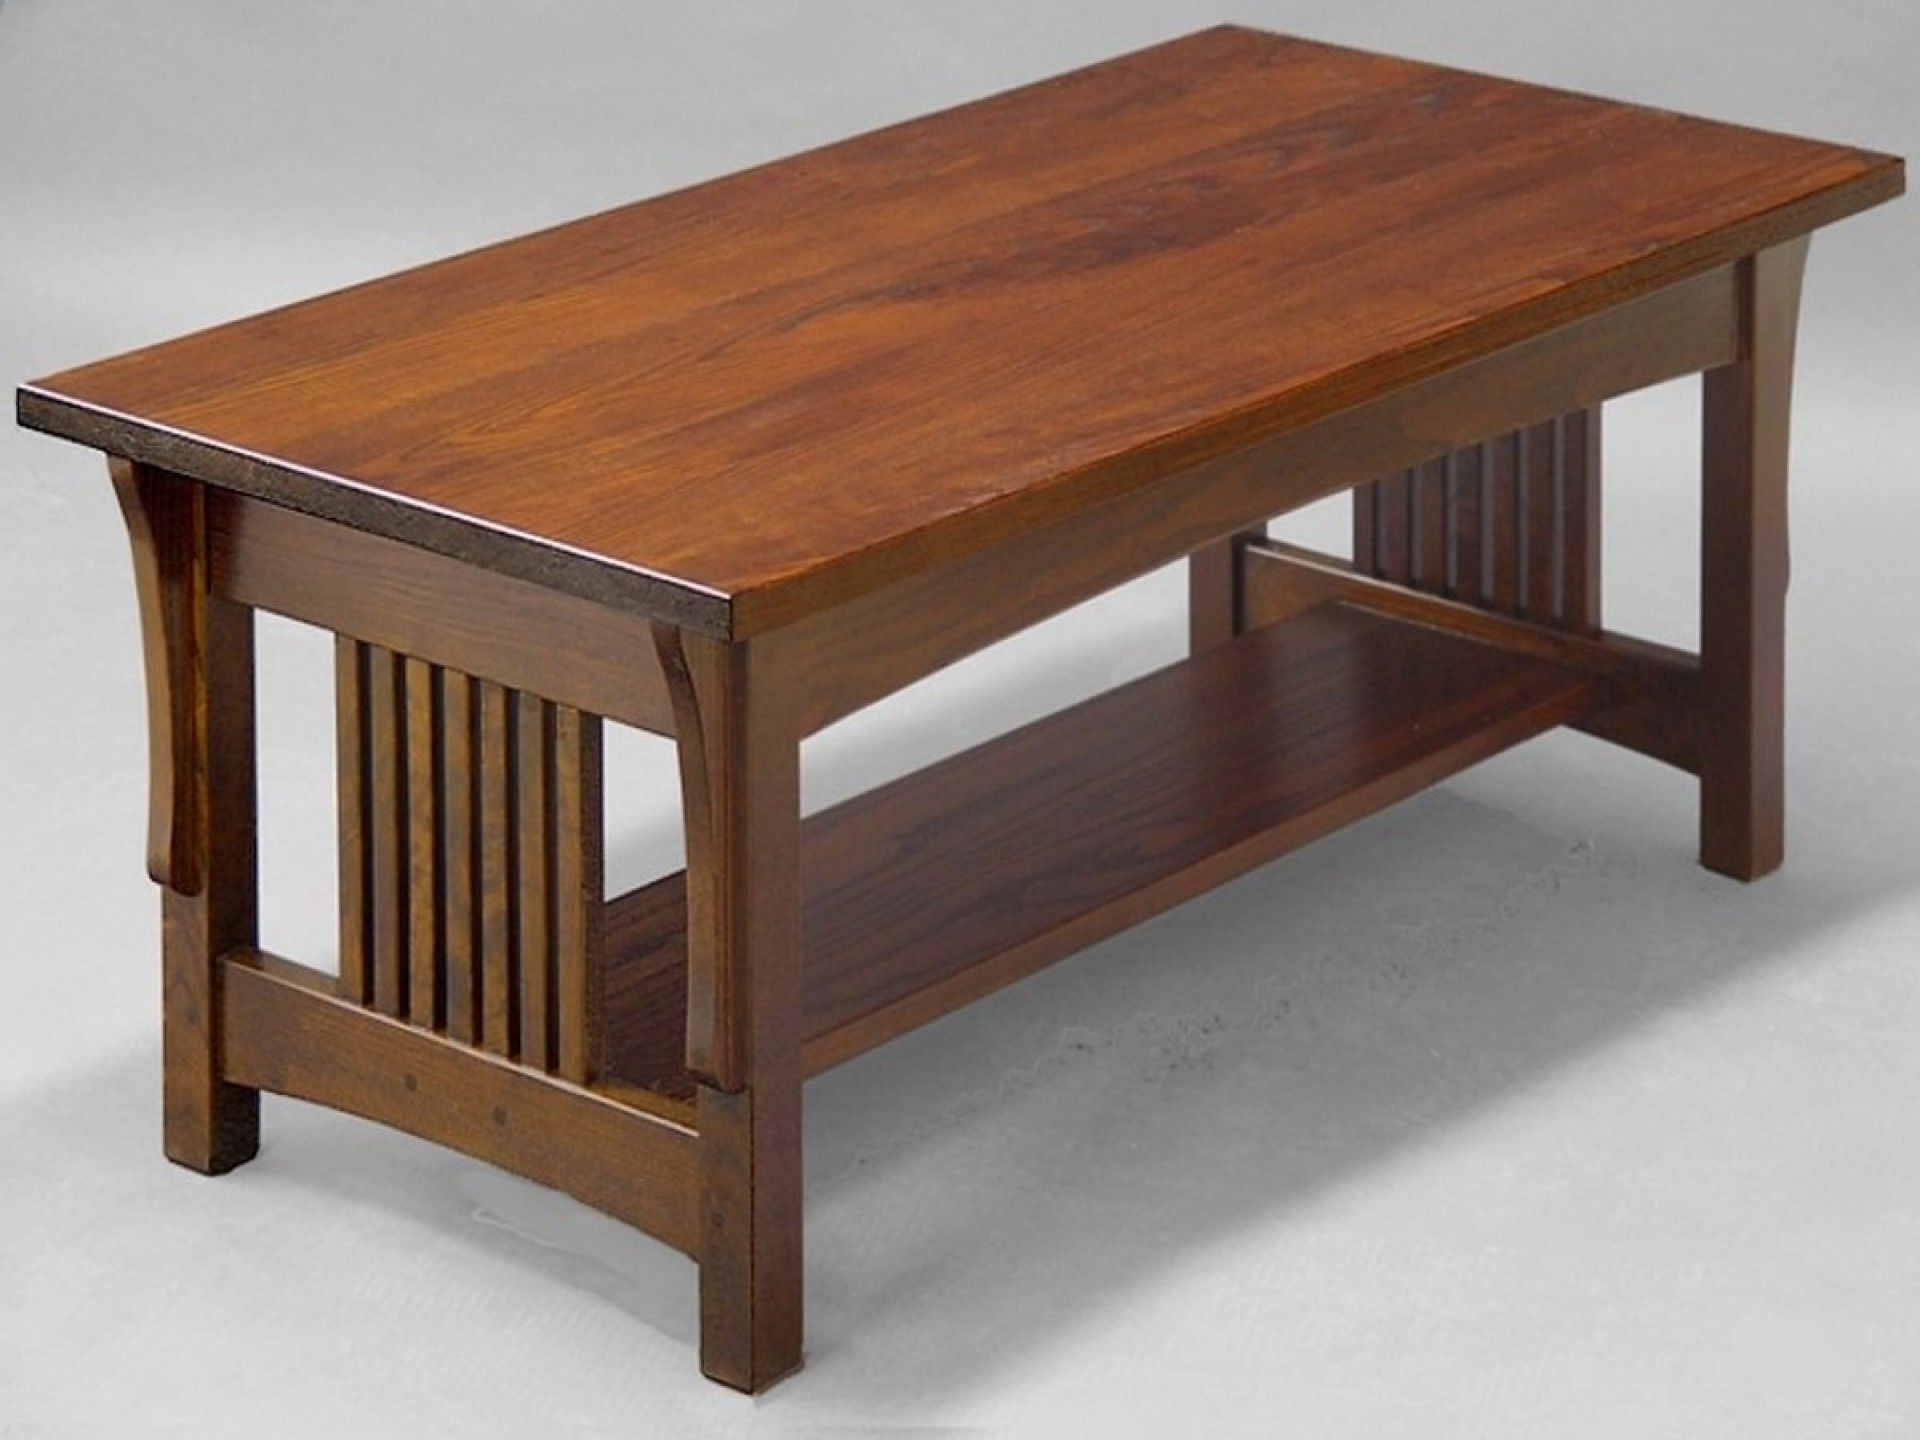 Newest Craftsman Cocktail Tables Regarding Coffee Table And End Tables Set For Sale Lovely Coffee Table And End (View 14 of 20)